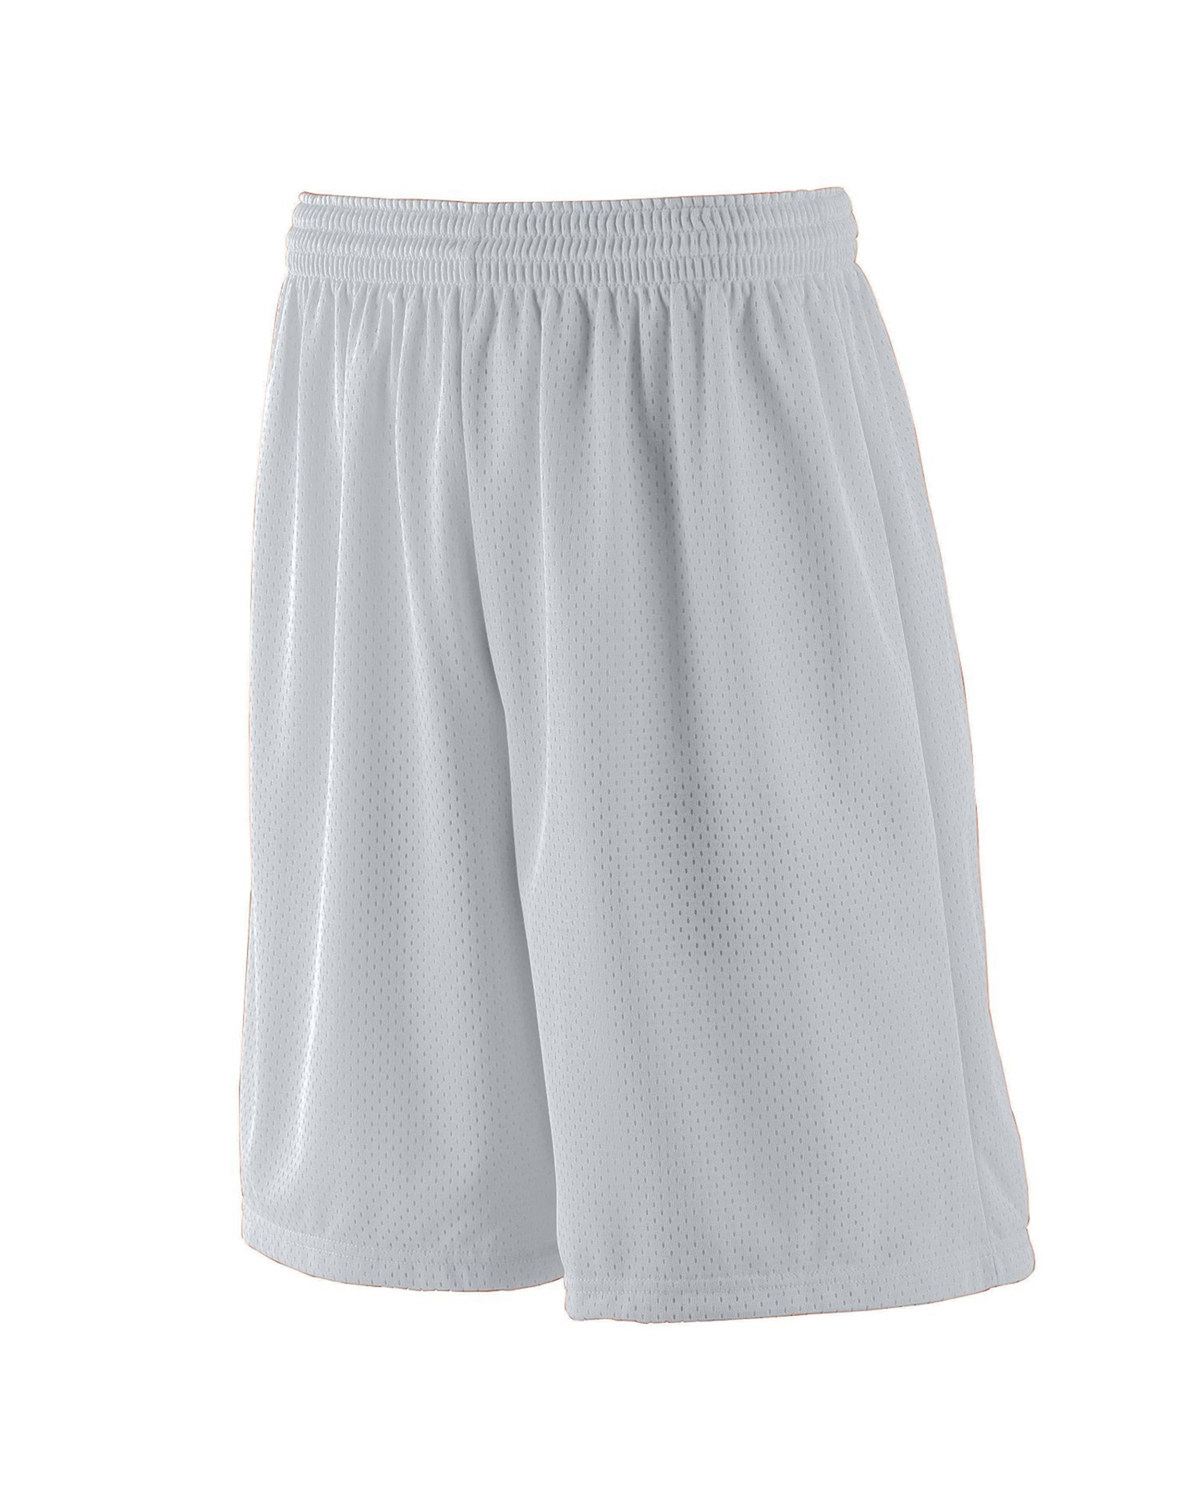 """Youth Tricot Mesh/Tricot-Lined 9"""" Short"""